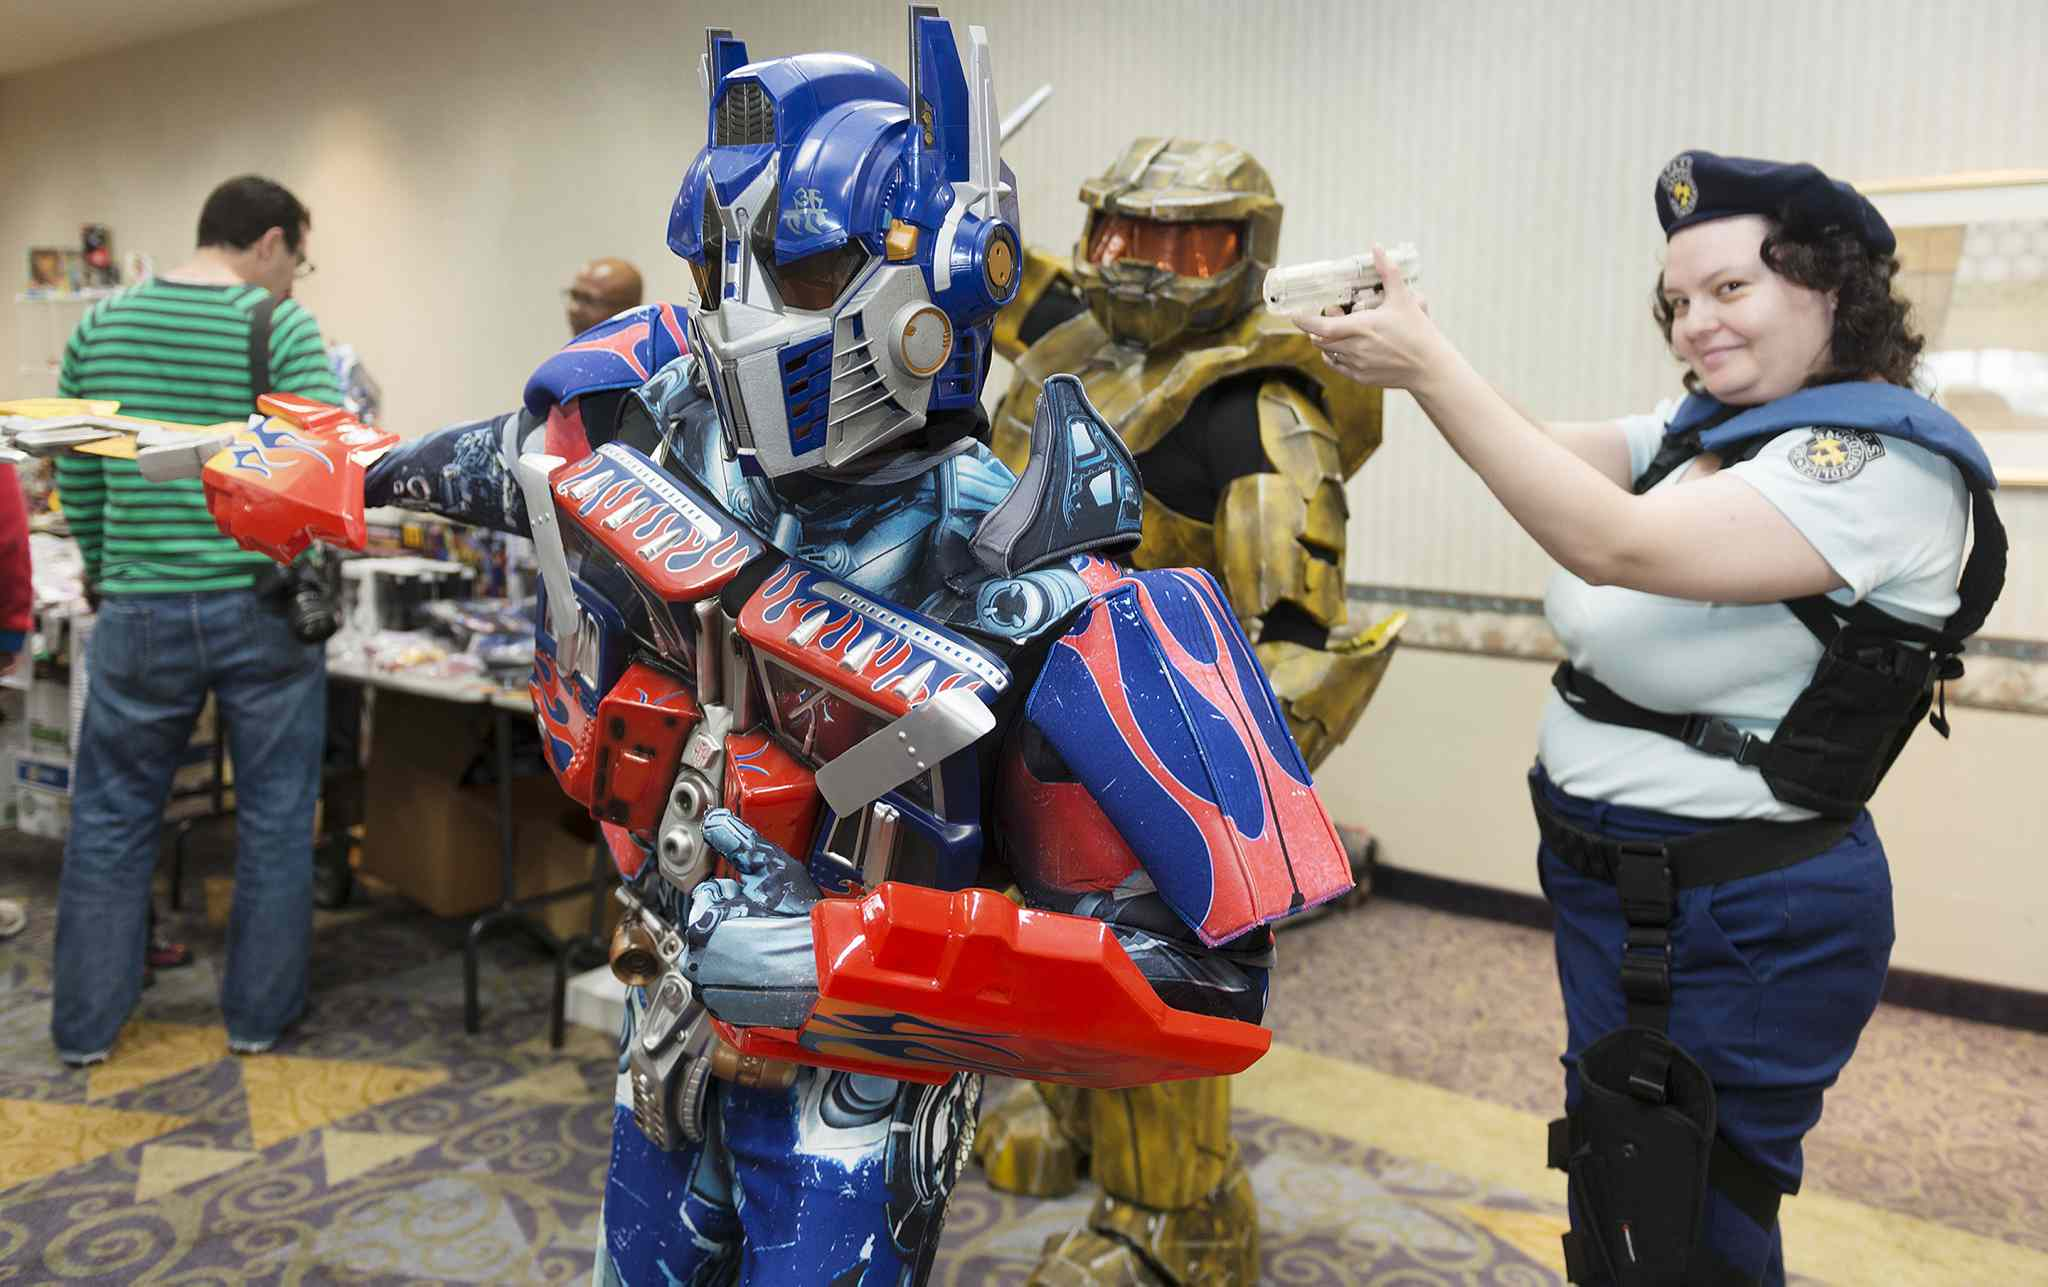 Gregory Marrast with Higher Functions Productions dresses up as Optimus Prime along with James Antoine as Griff from Halo Red vs. Blue and Sheila Breer as Jill Valentine from Resident Evil on Saturday at the Transformers Convention at the Clarion Hotel.